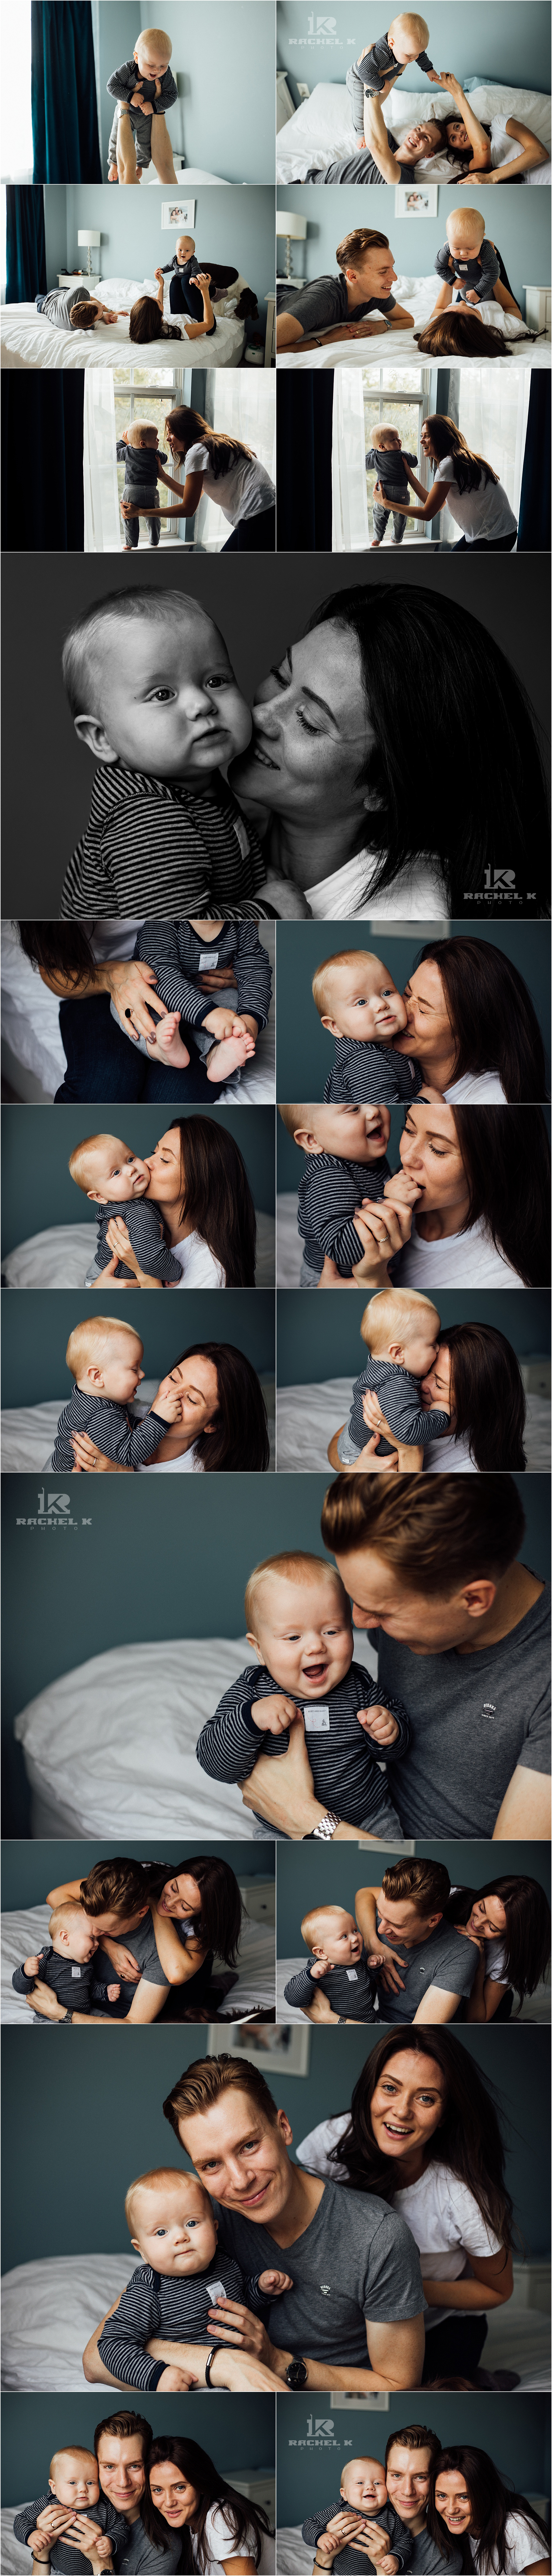 Fairfax Virginia indoor lifestyle session with 8 month old by Rachel K Photo